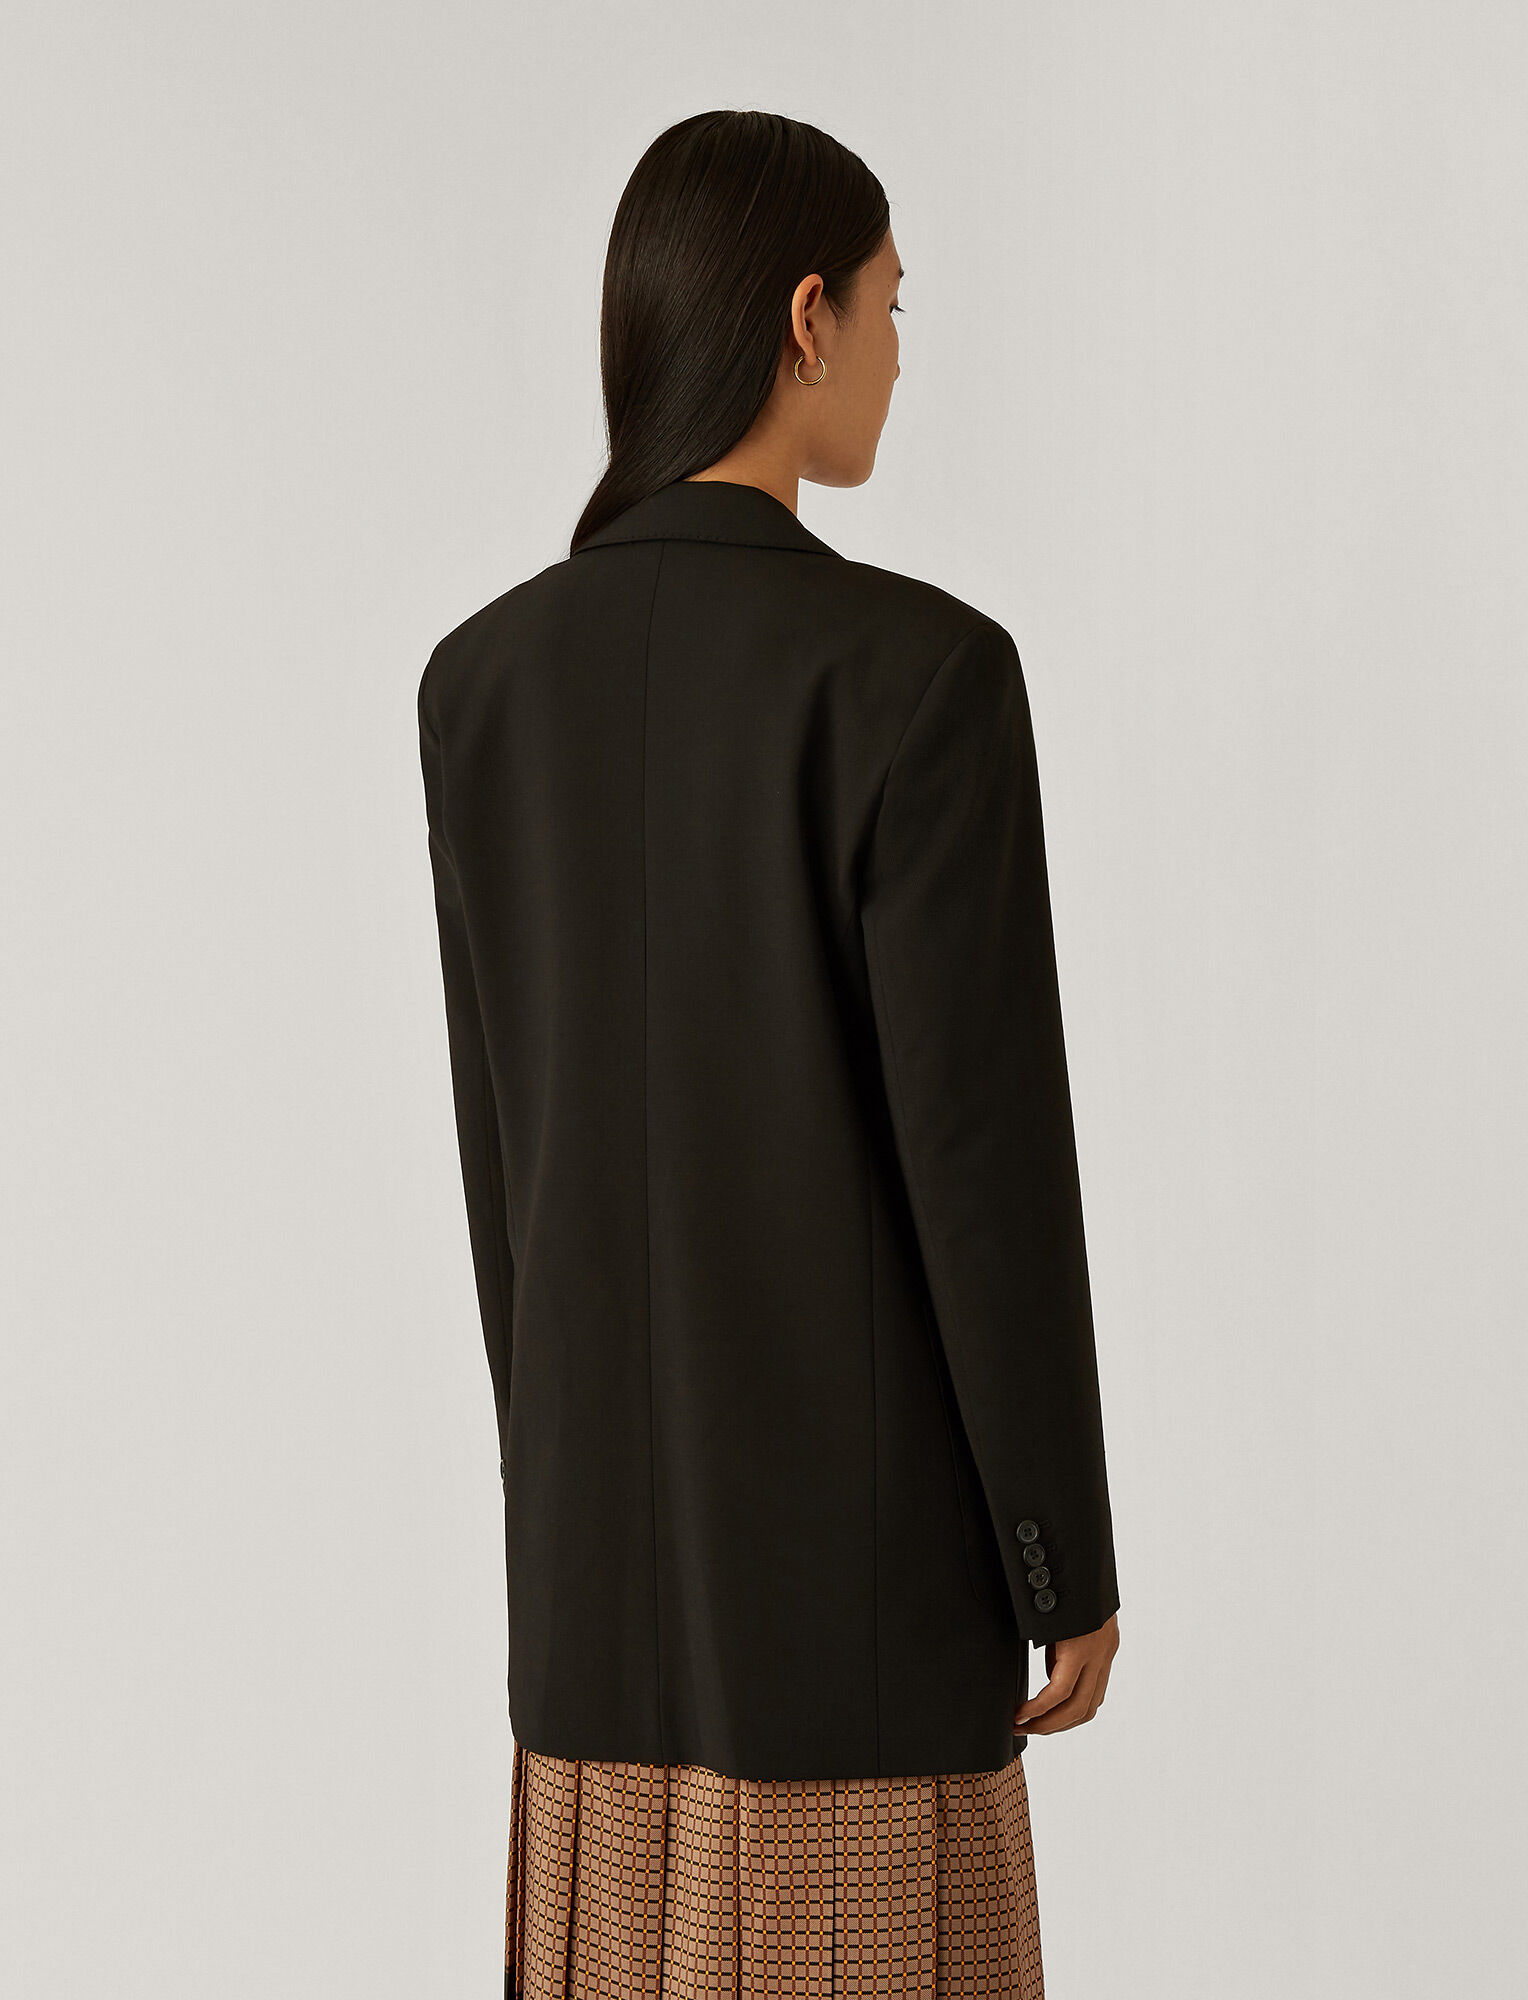 Joseph, Josie Light Wool Suiting Jacket, in Black